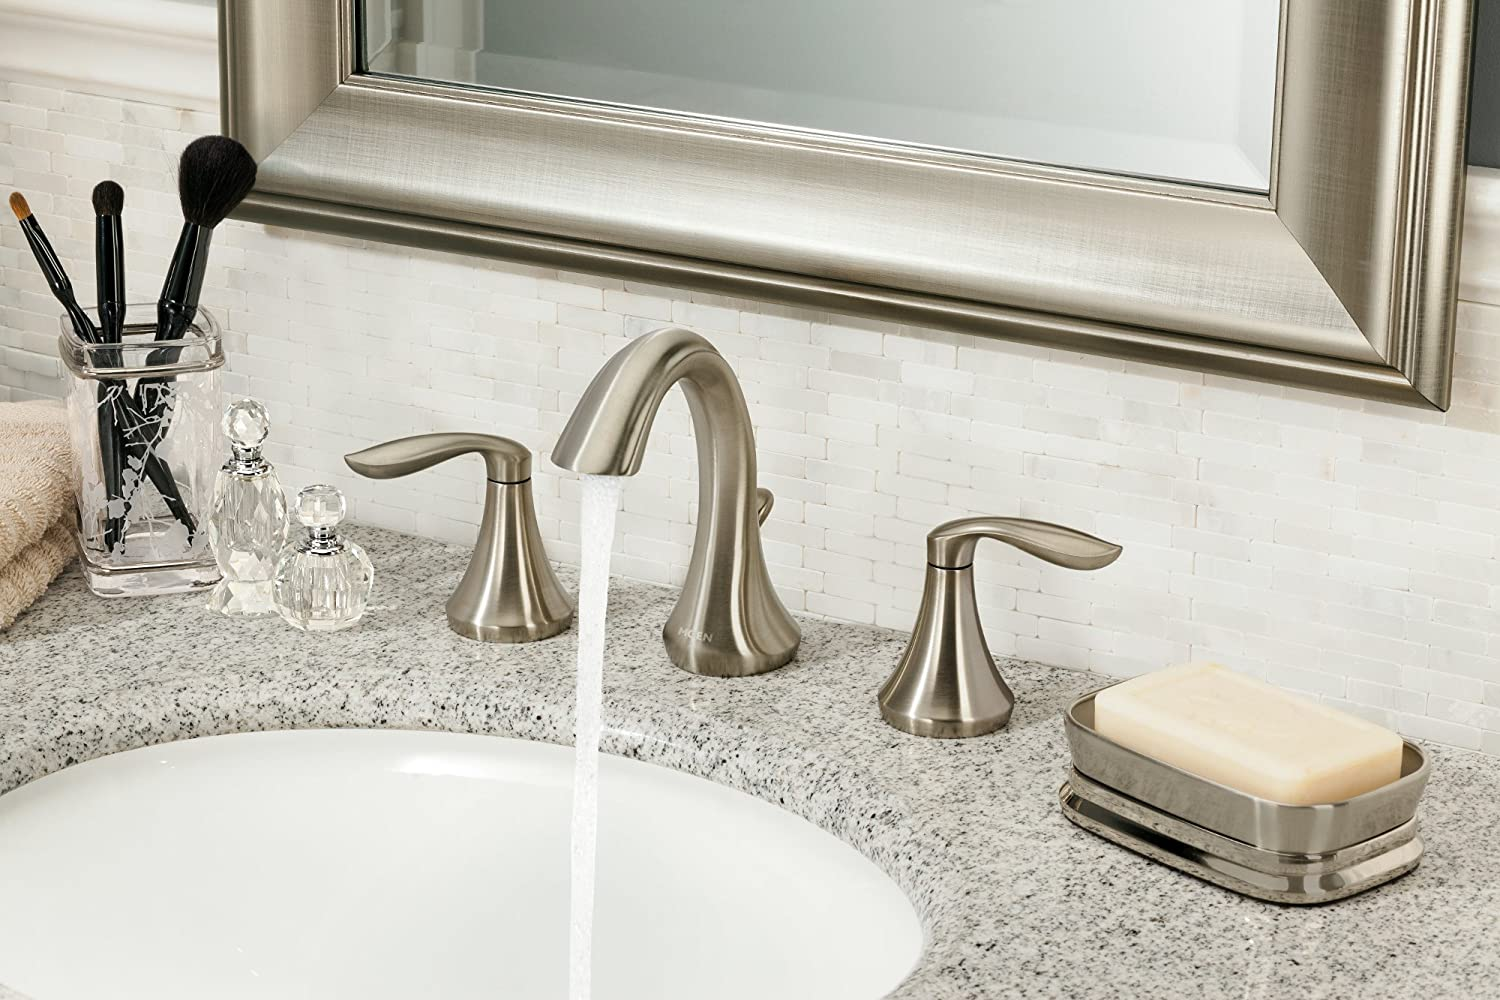 Moen T6420 Eva Two-Handle High-Arc 8-Inch Widespread Bathroom Faucet, Valve Required, Valve Required, Chrome - Widespread Faucet -